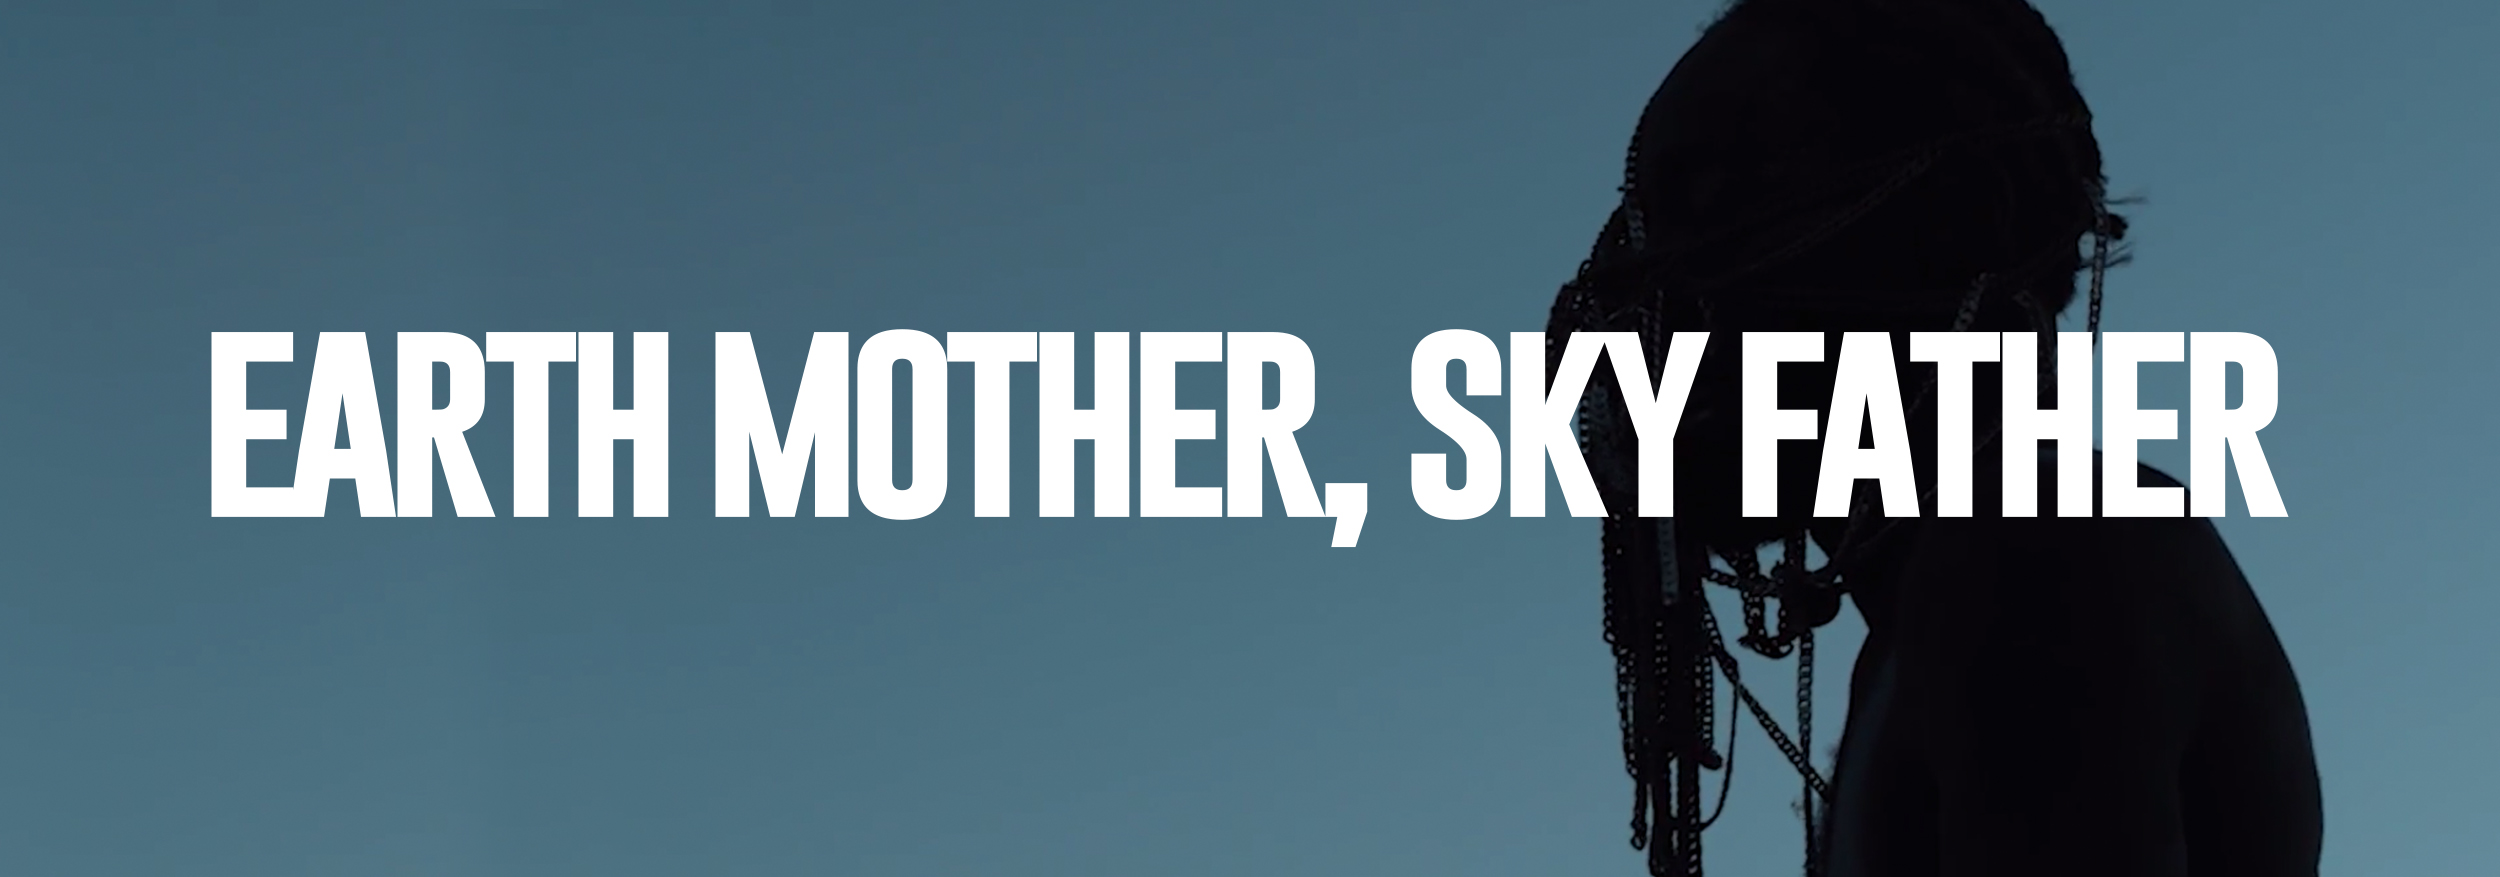 EARTH_MOTHER_FATHER_SKY_WEB_TITLE.jpg